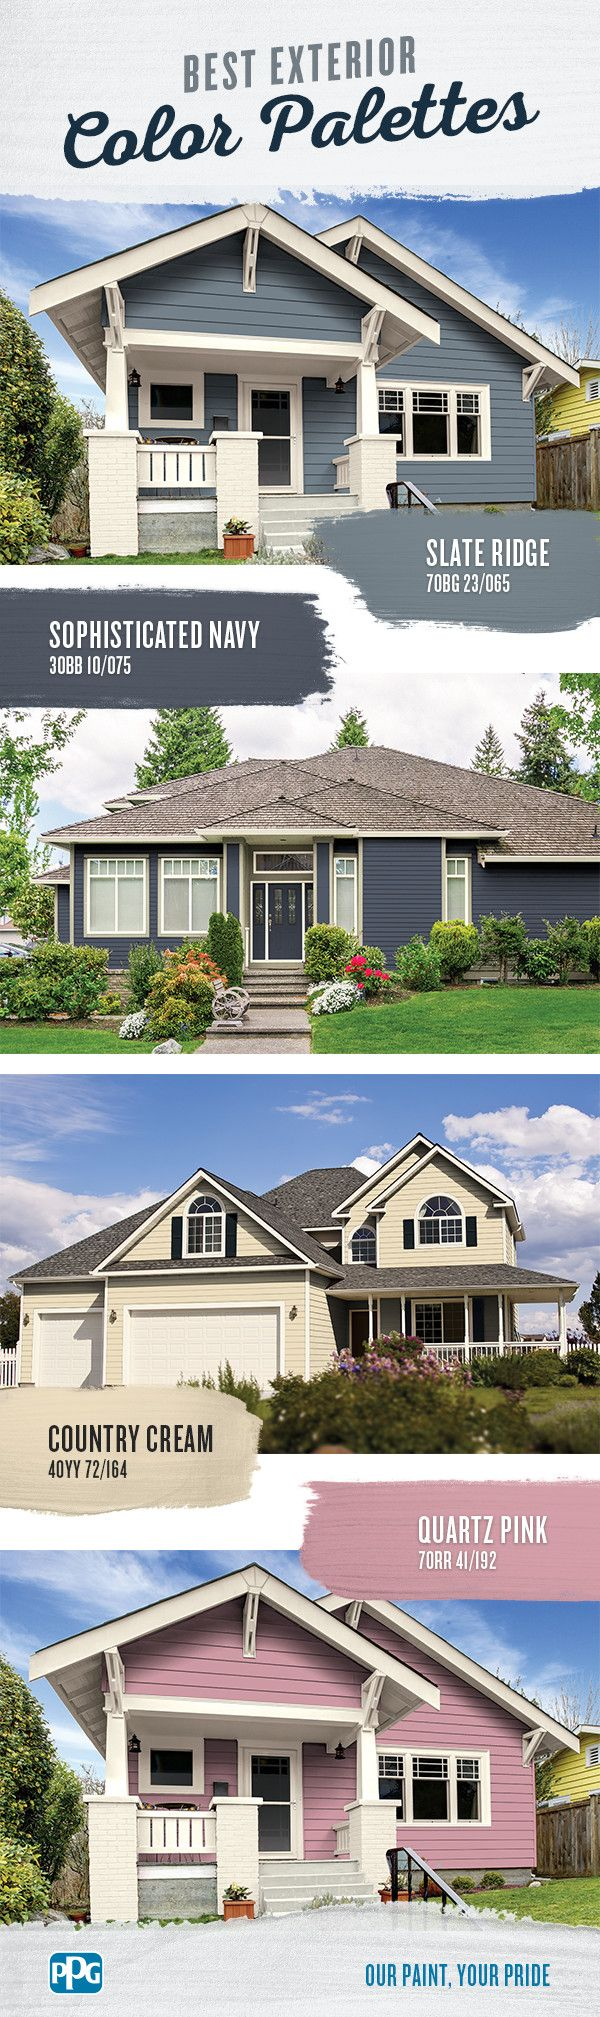 Best Exterior Color Palettes | Thoughtful exterior color schemes can help add curb appeal to any home. Well-chosen exterior paint colors and exterior color schemes can also show off your style and bring attention to the house's beautiful details.